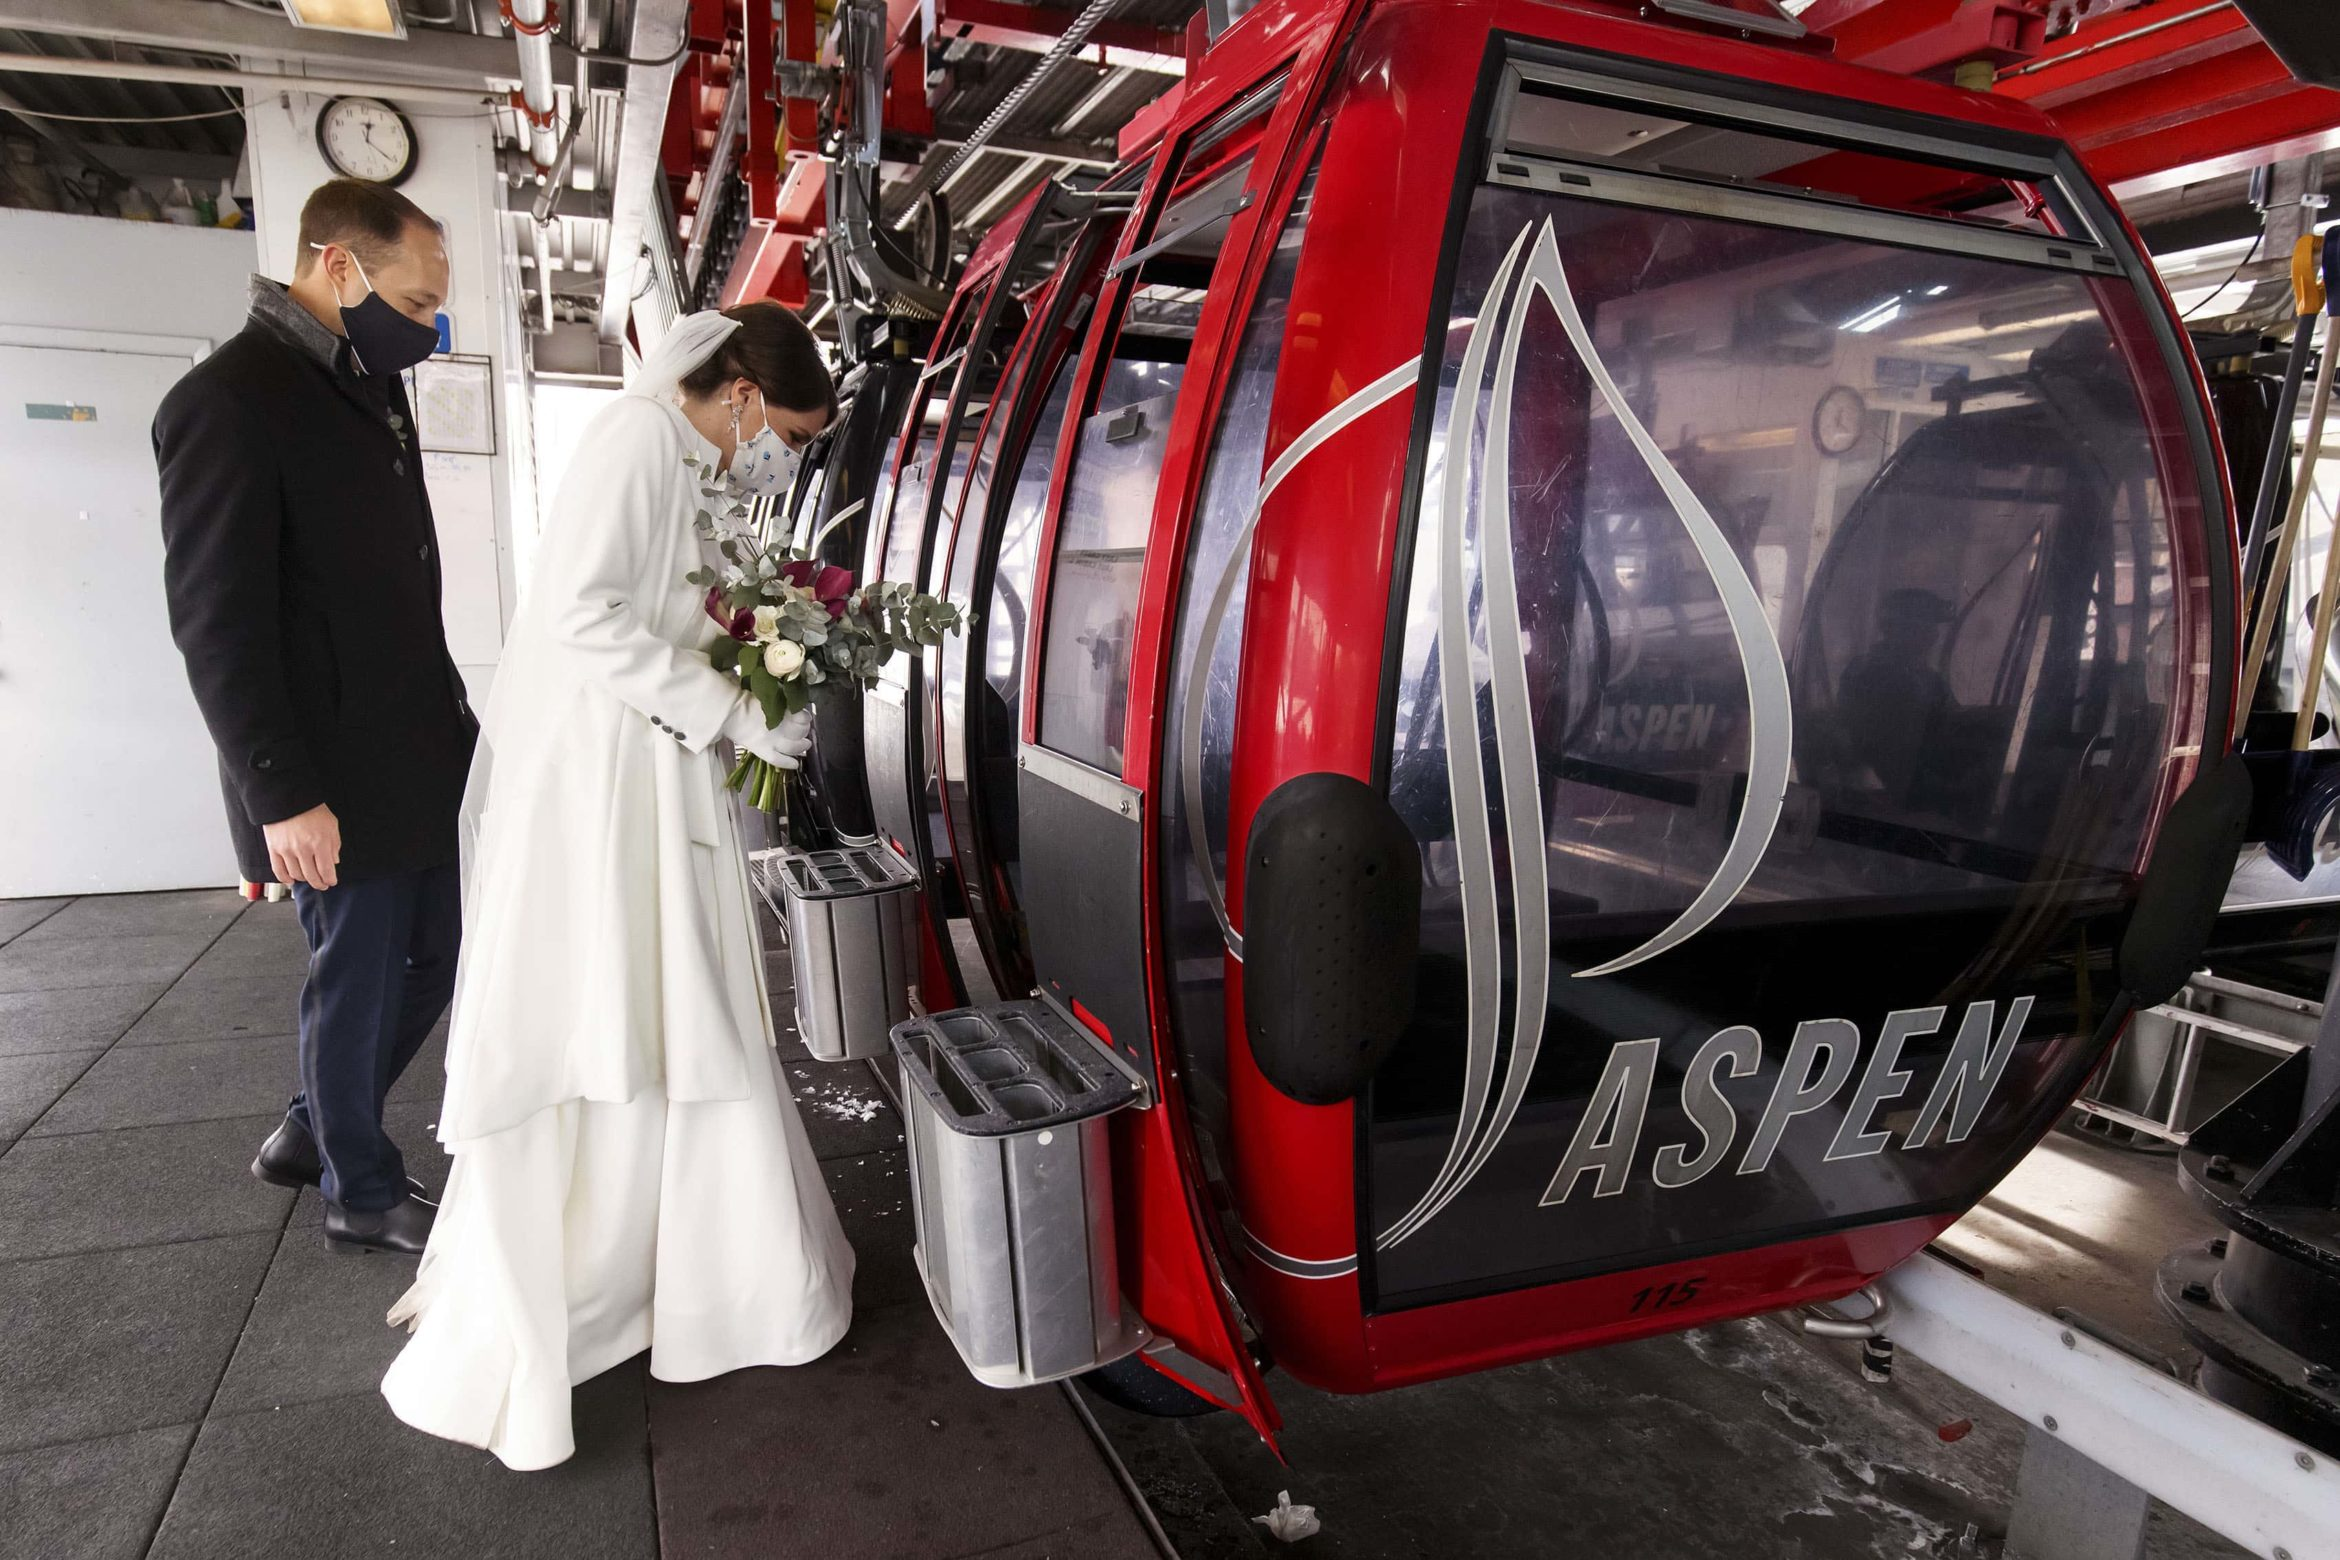 The bride and groom board the Silver Queen Gondola at Aspen Mountain on their wedding day